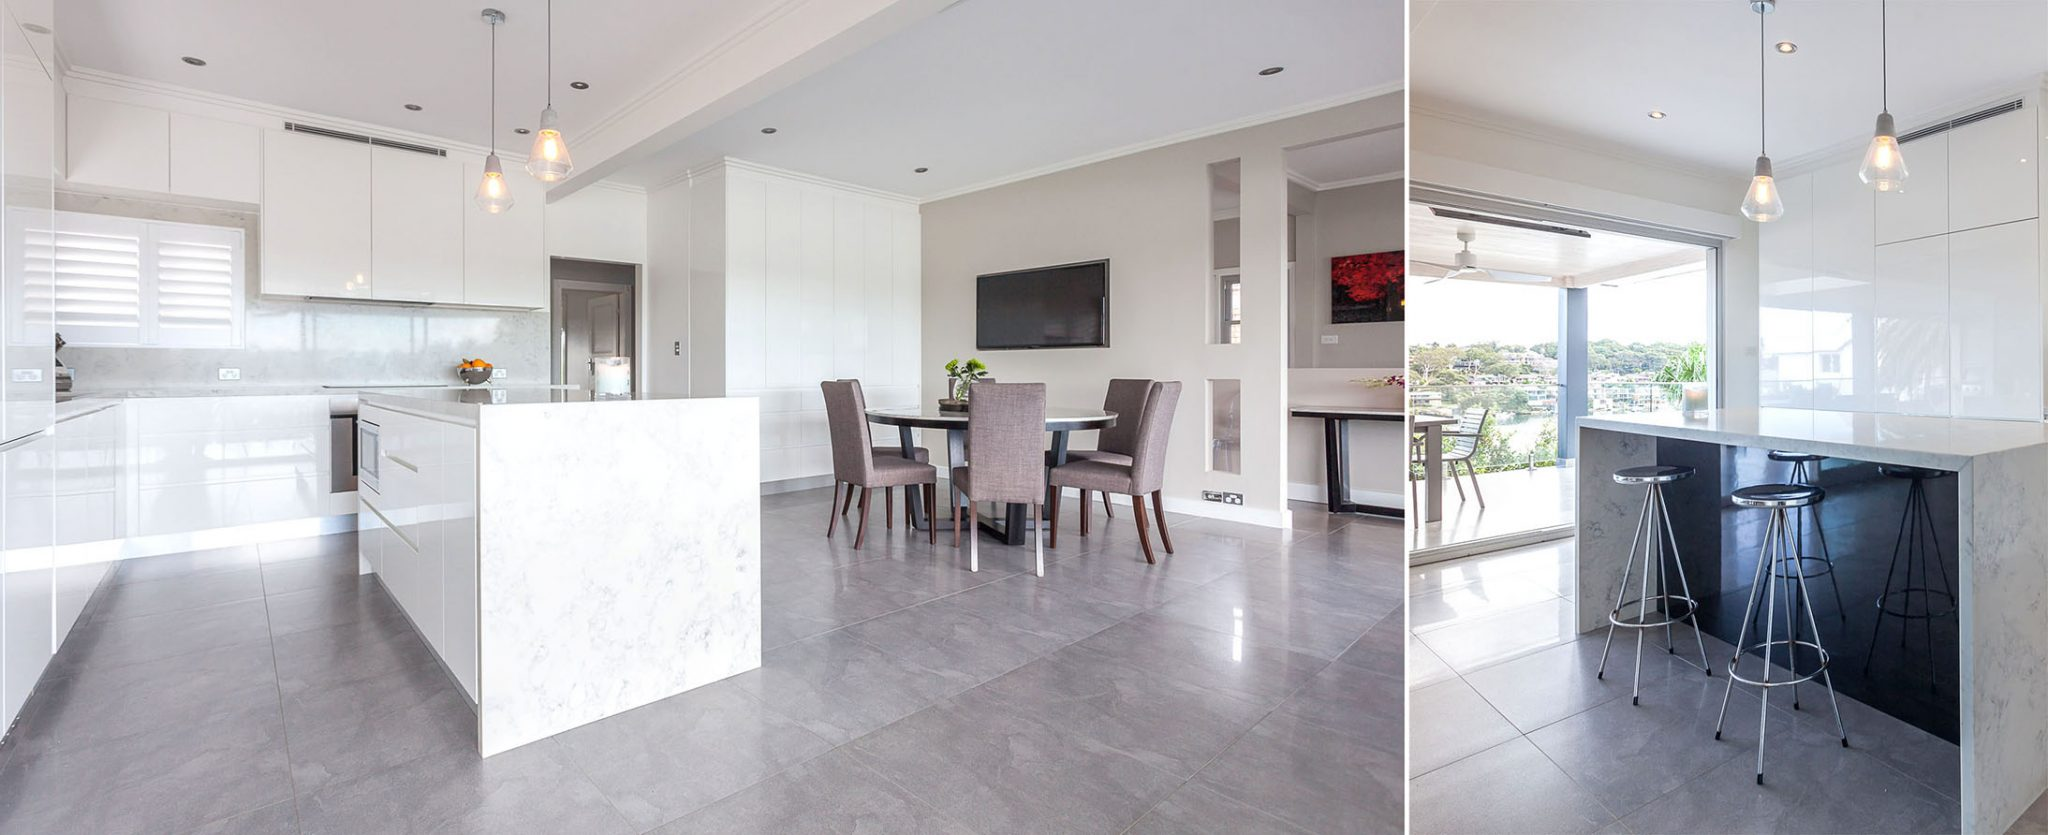 4 Tips To Choosing The Right Floor Tile